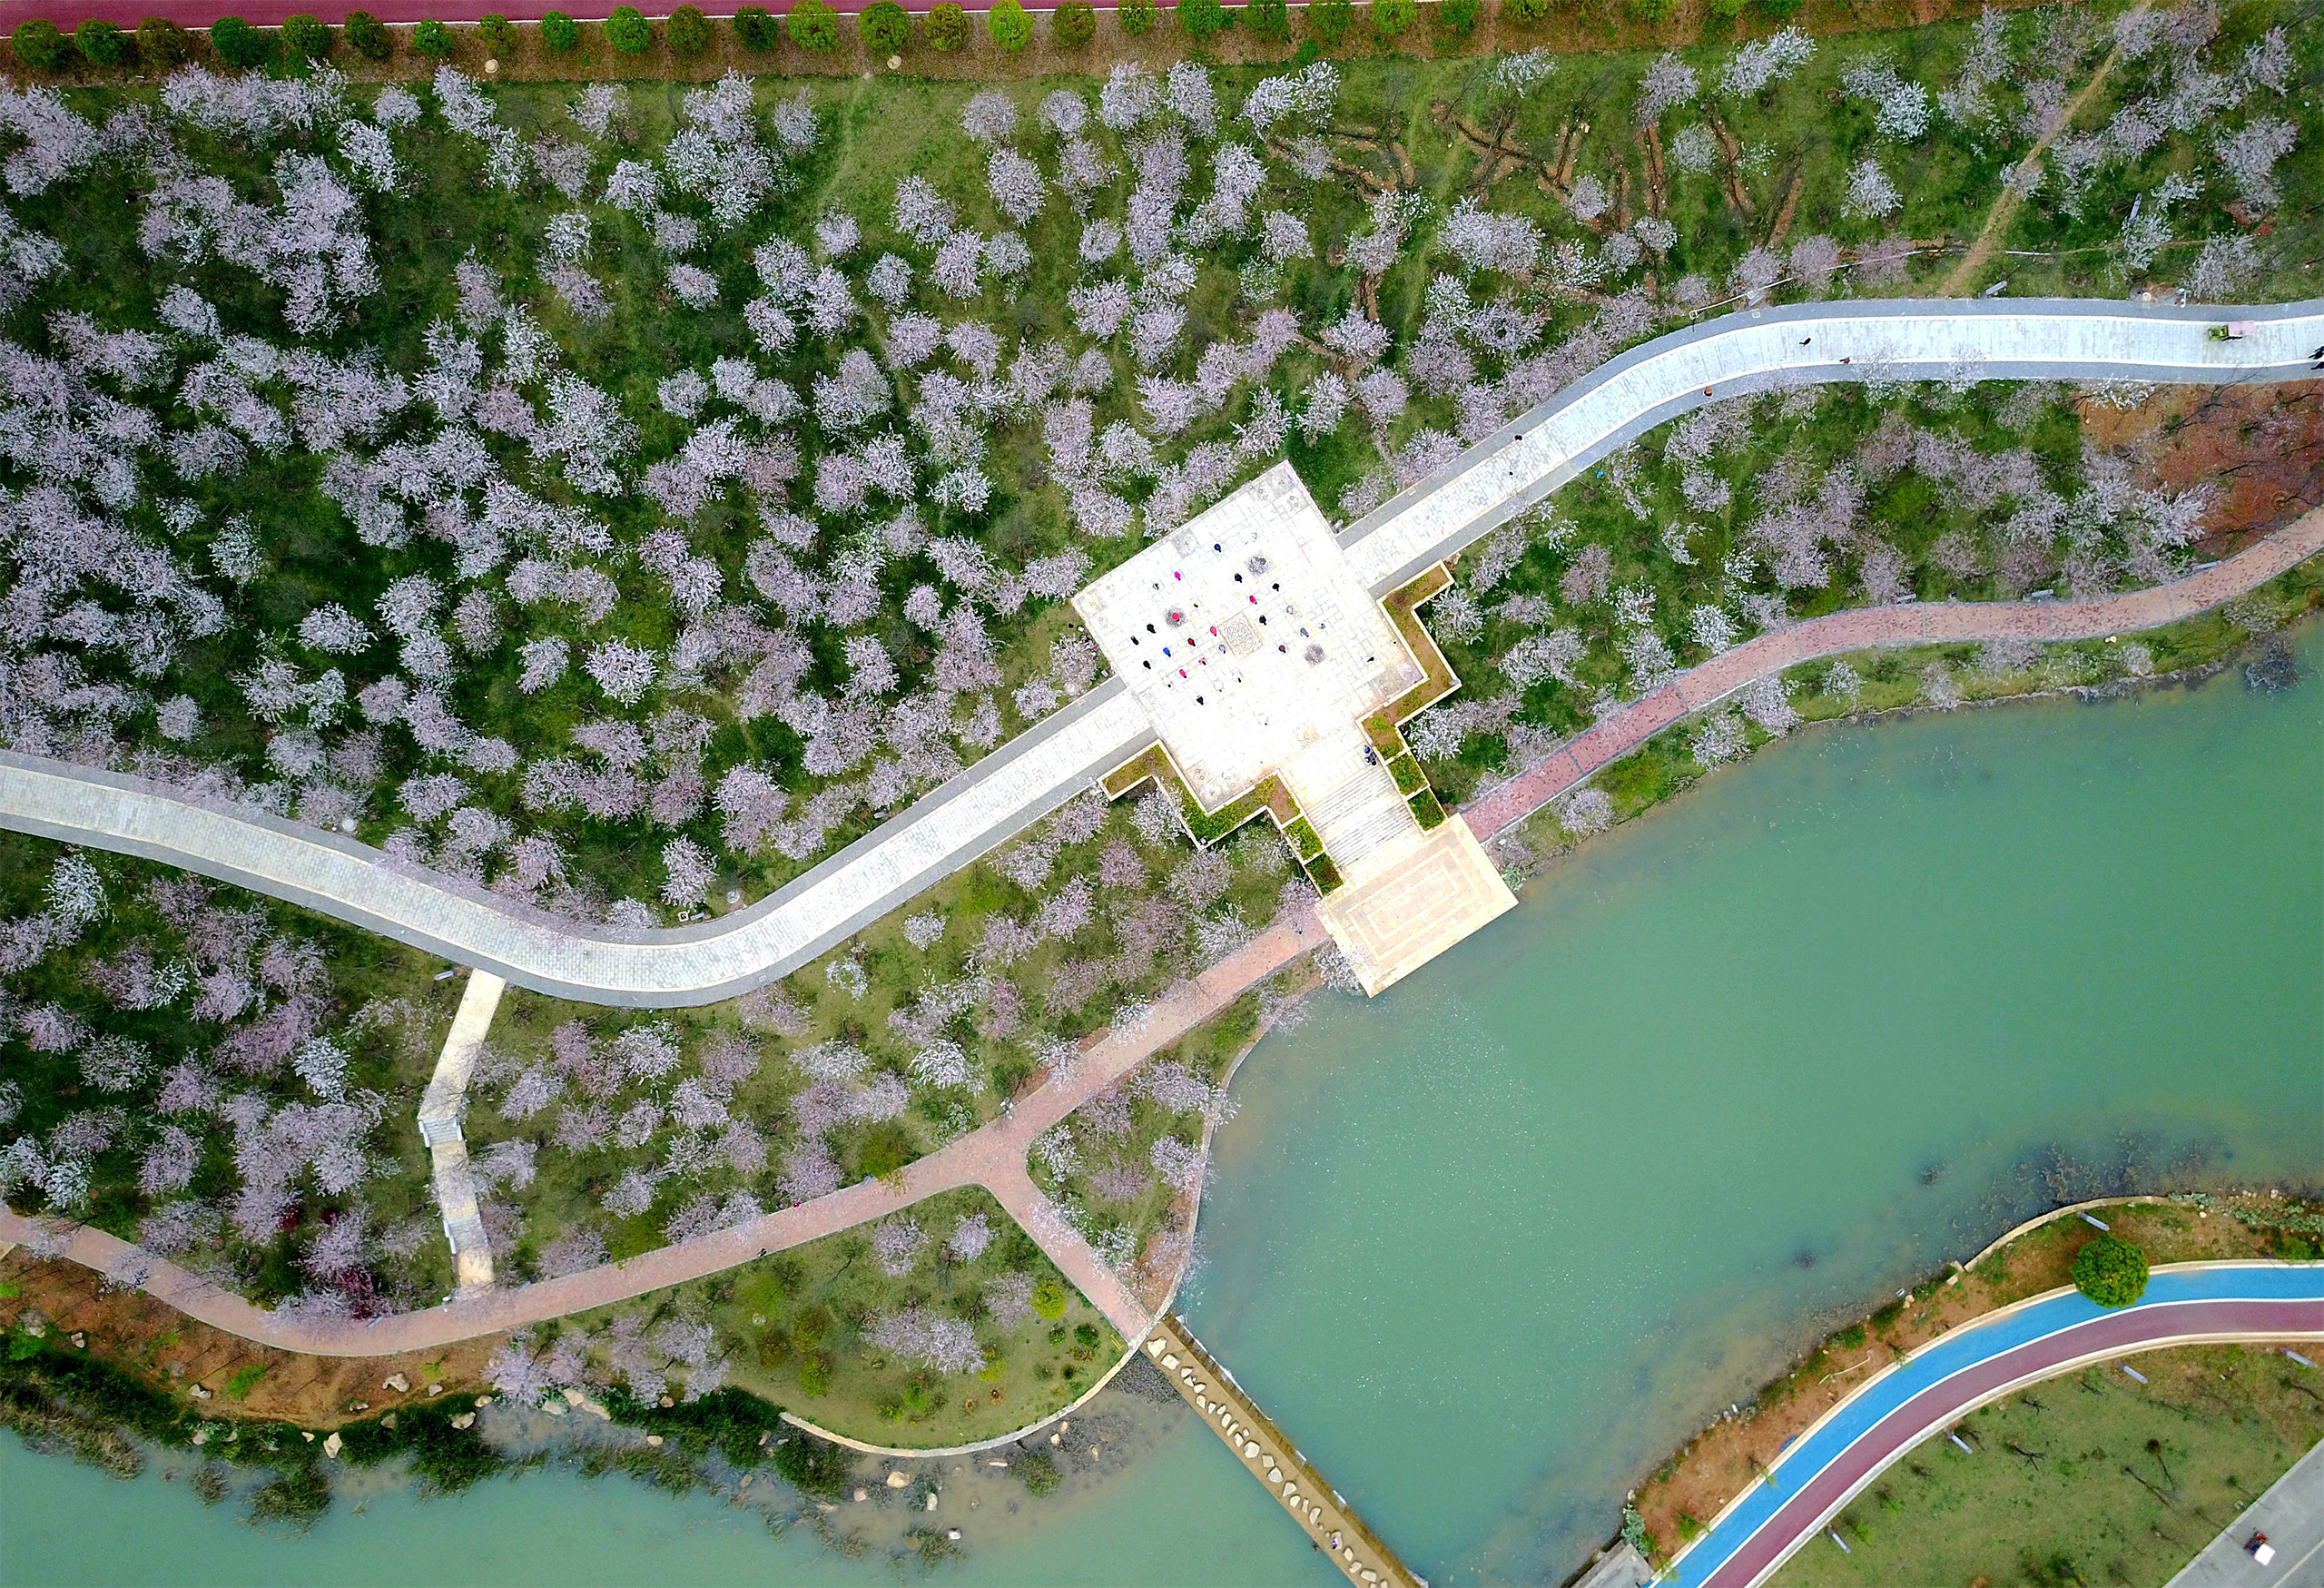 A photo taken on April 2, 2017 shows the aerial view of the cherry blossoms in Yilong New Area of the Bouyei-Miao Autonomous Prefecture of Qianxi'nan, southwest China's Guizhou Province.